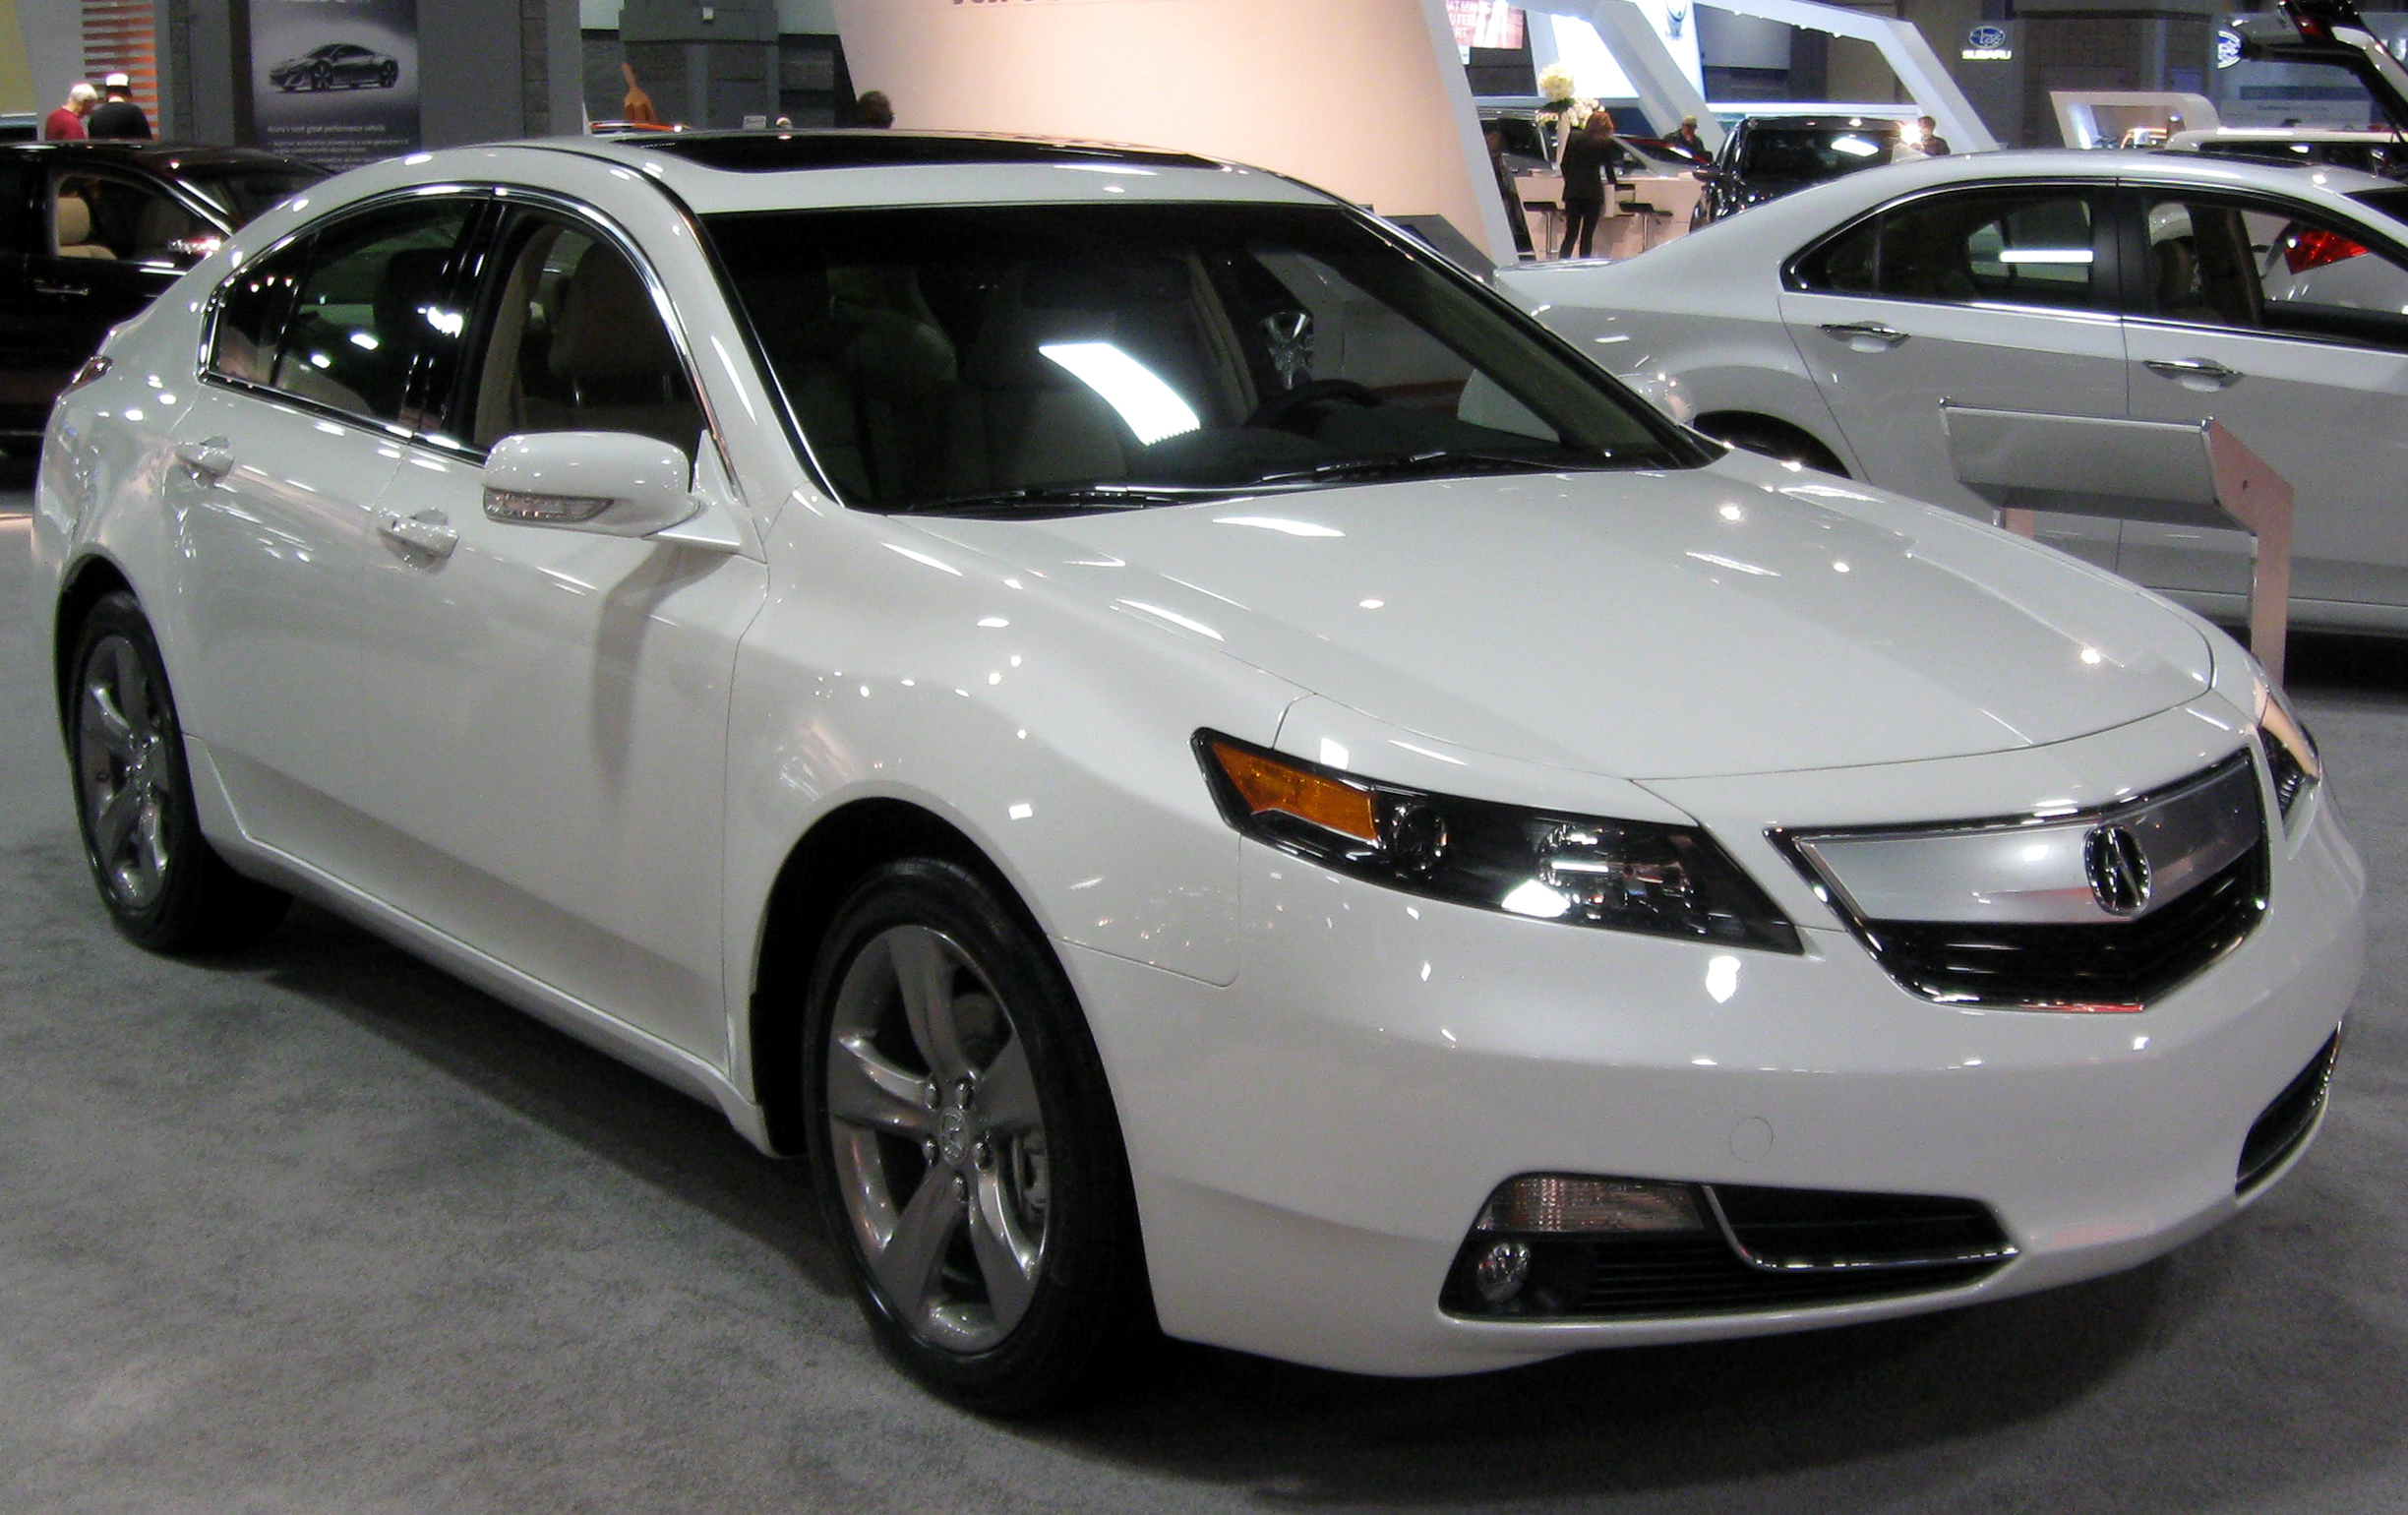 file 2012 acura tl 2012 dc jpg wikimedia commons. Black Bedroom Furniture Sets. Home Design Ideas